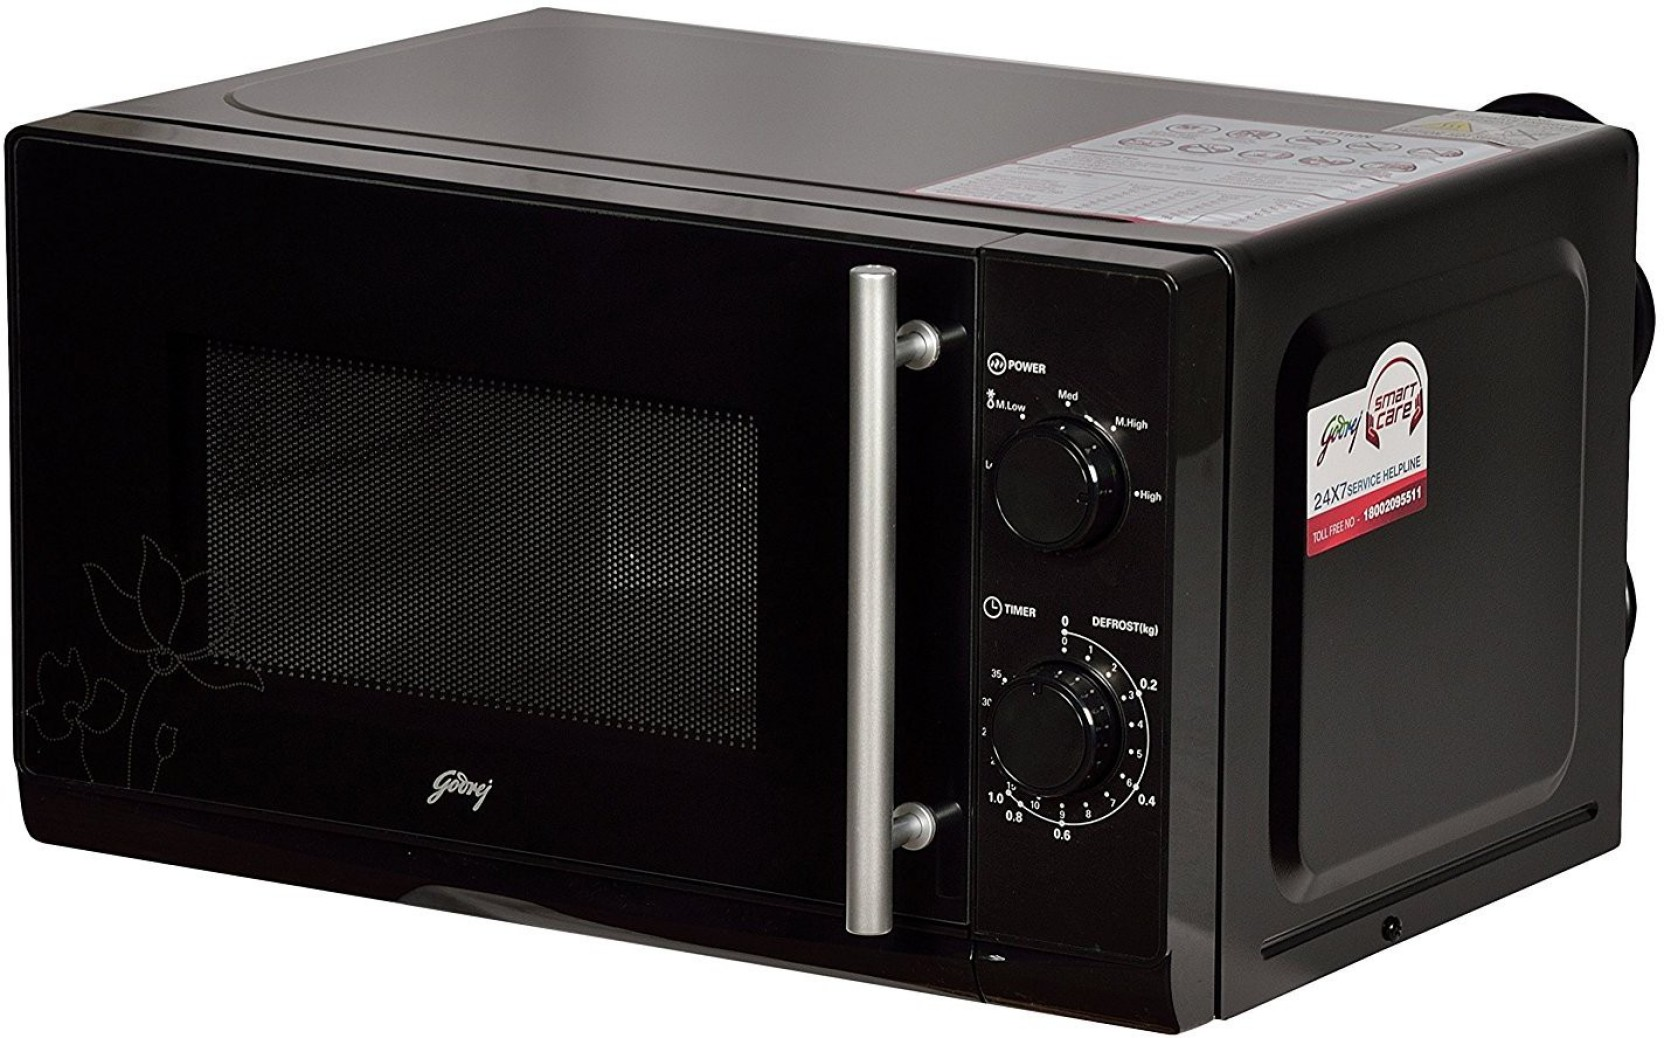 Godrej 20 L Solo Microwave Oven Kelvinator Wall Wiring Diagram Add To Cart